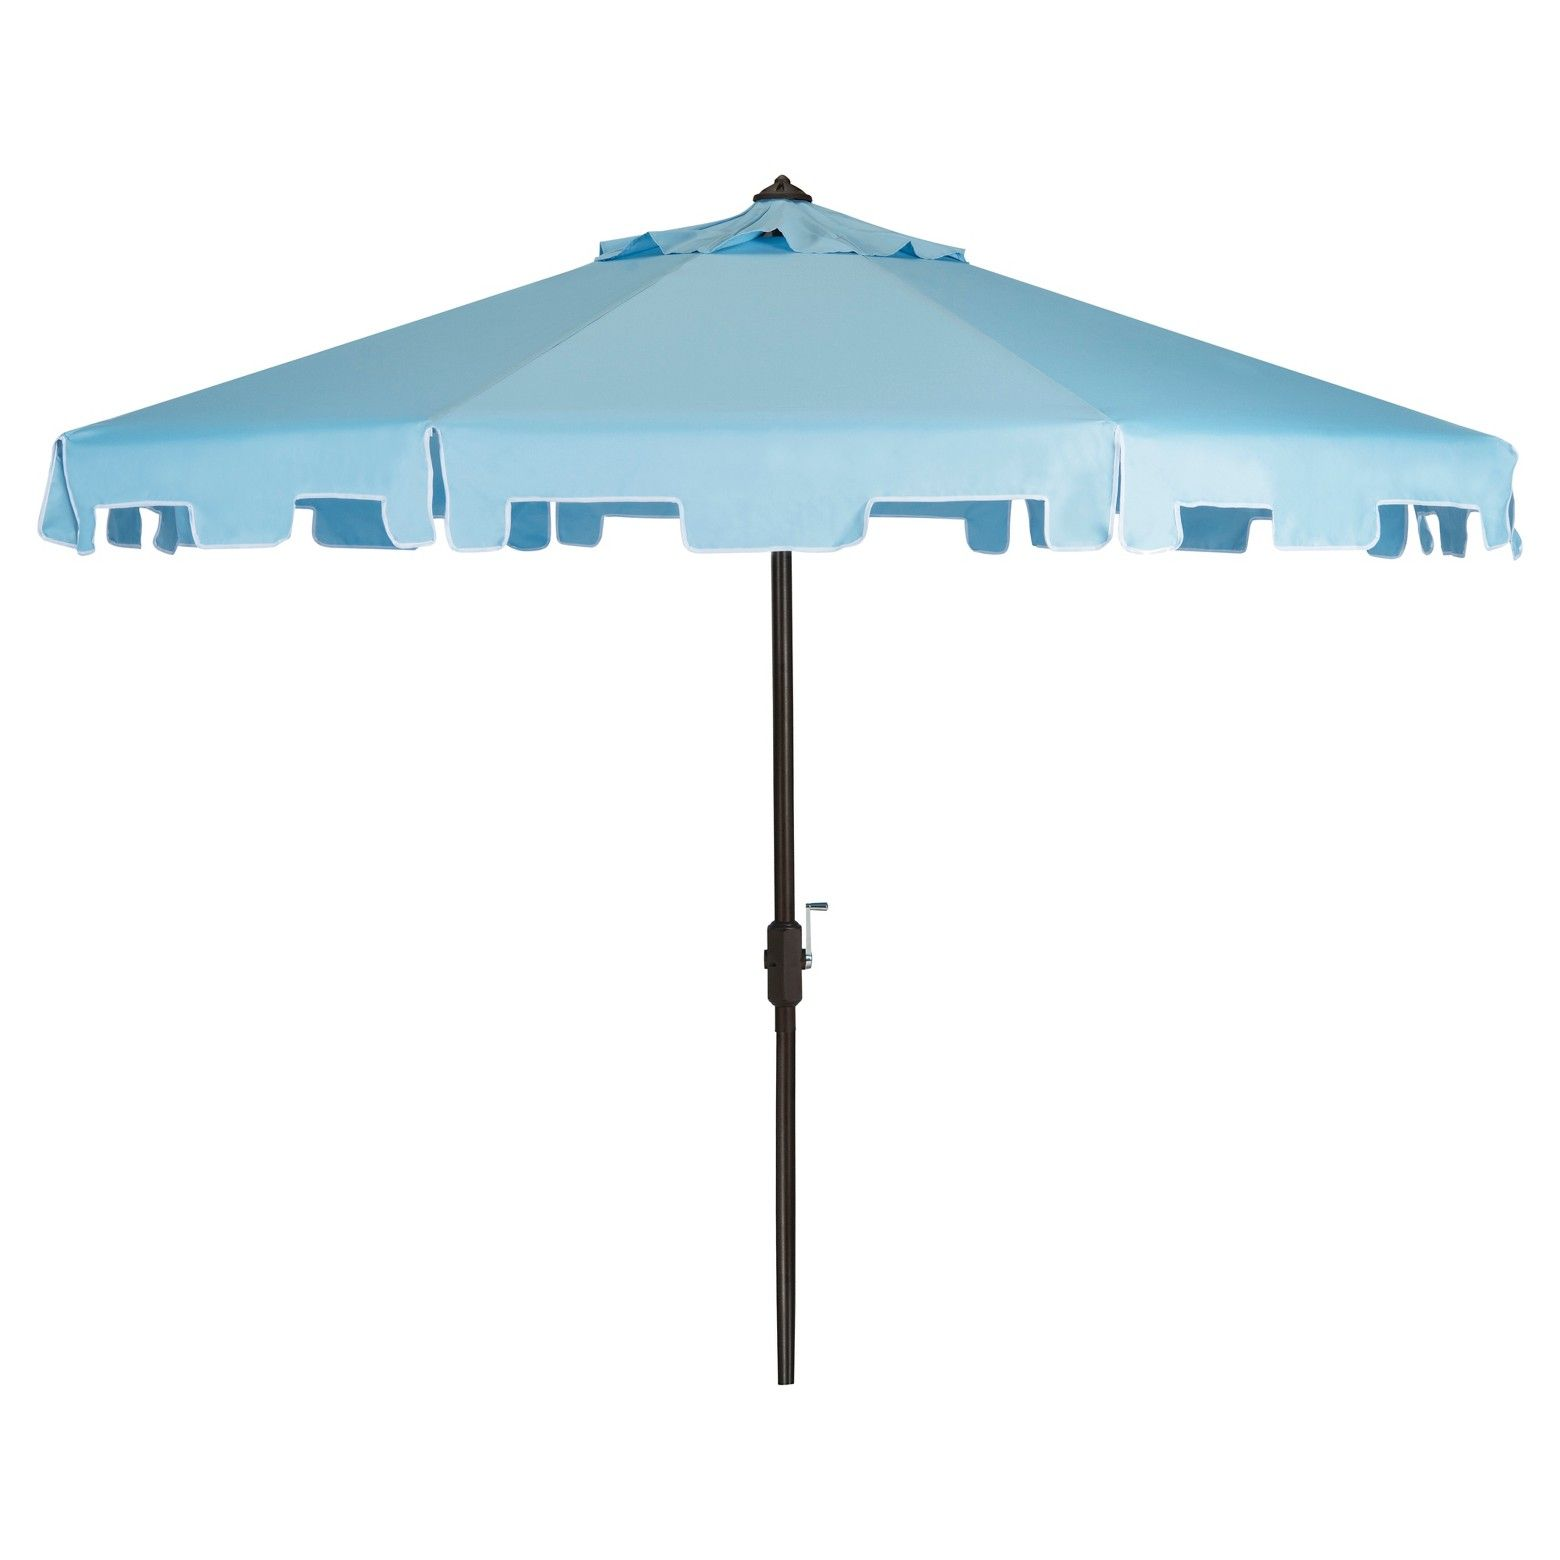 A classic market umbrella gets a chic makeover with fashion-forward fabric and a valance for extra sun protection and European flair. Its nine-foot polyester canopy and sturdy brown aluminum frame make it the ideal umbrella for veranda or pool deck. Includes easy crank and tilt mechanism.